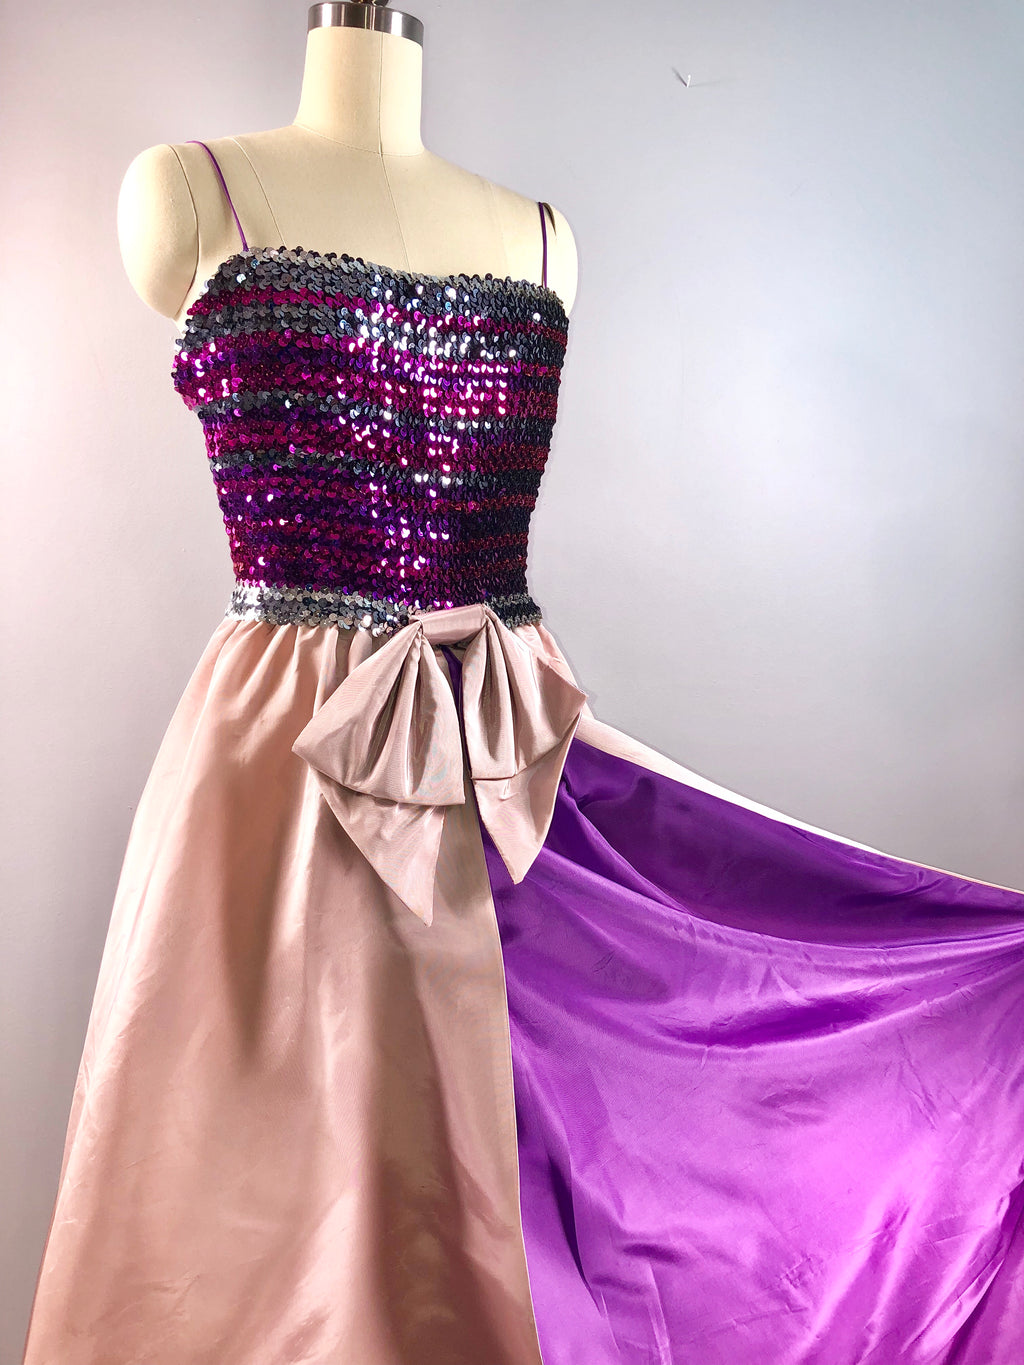 Patricia Green Couture 60s vintage 1960s Cocktail Party Dress Pink Purple Sequin 34 bust